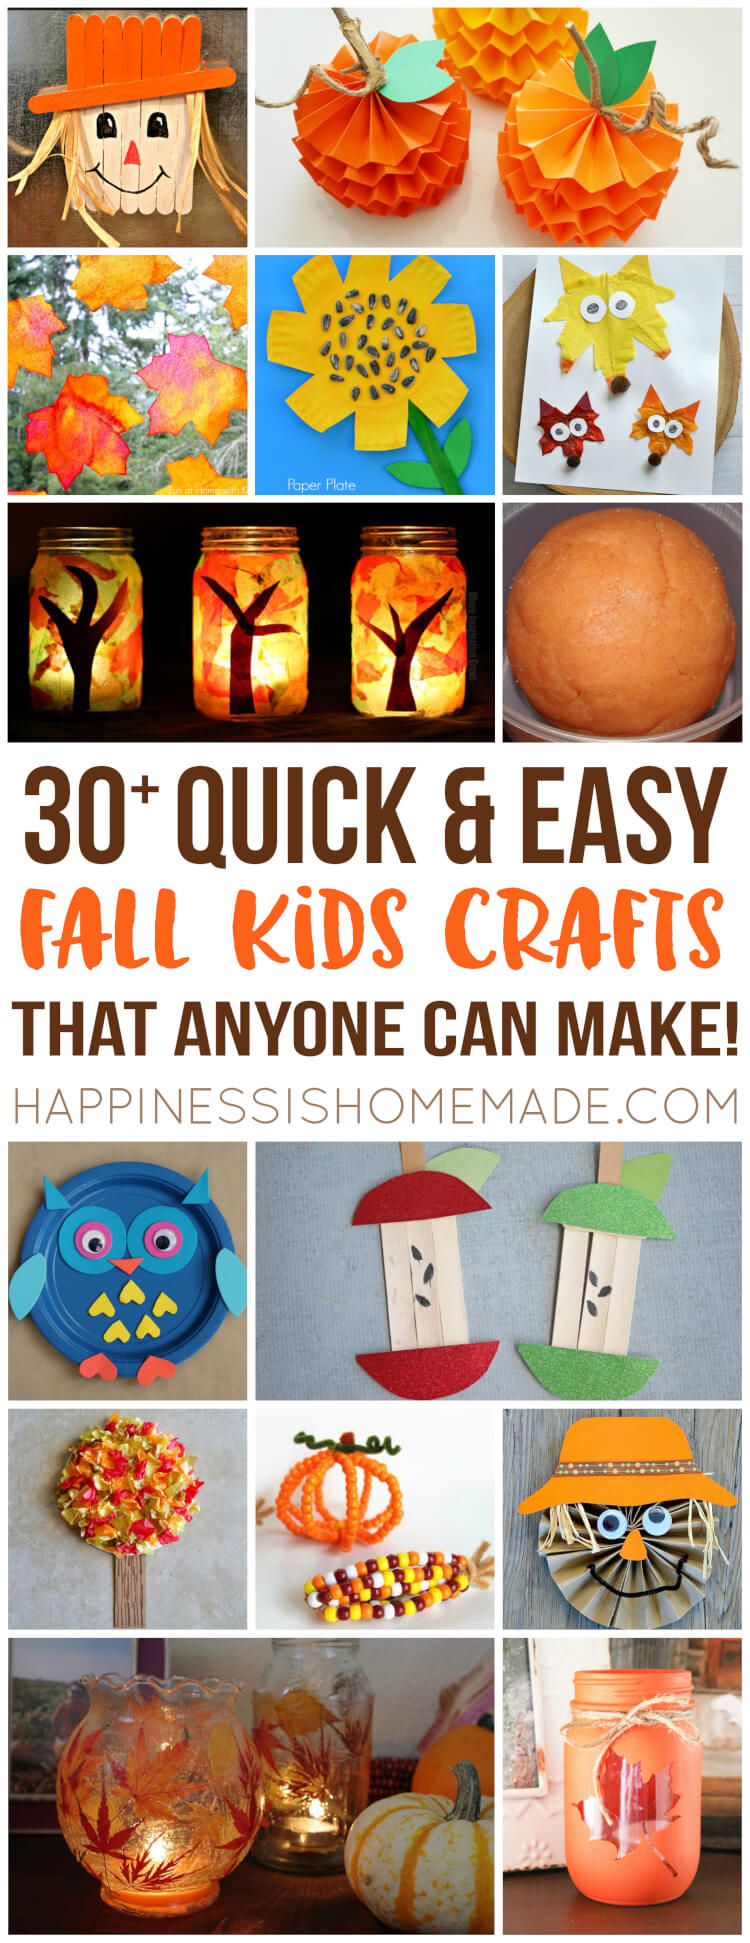 Simple Fall Wreath: Easy Fall Kids Crafts That Anyone Can Make!